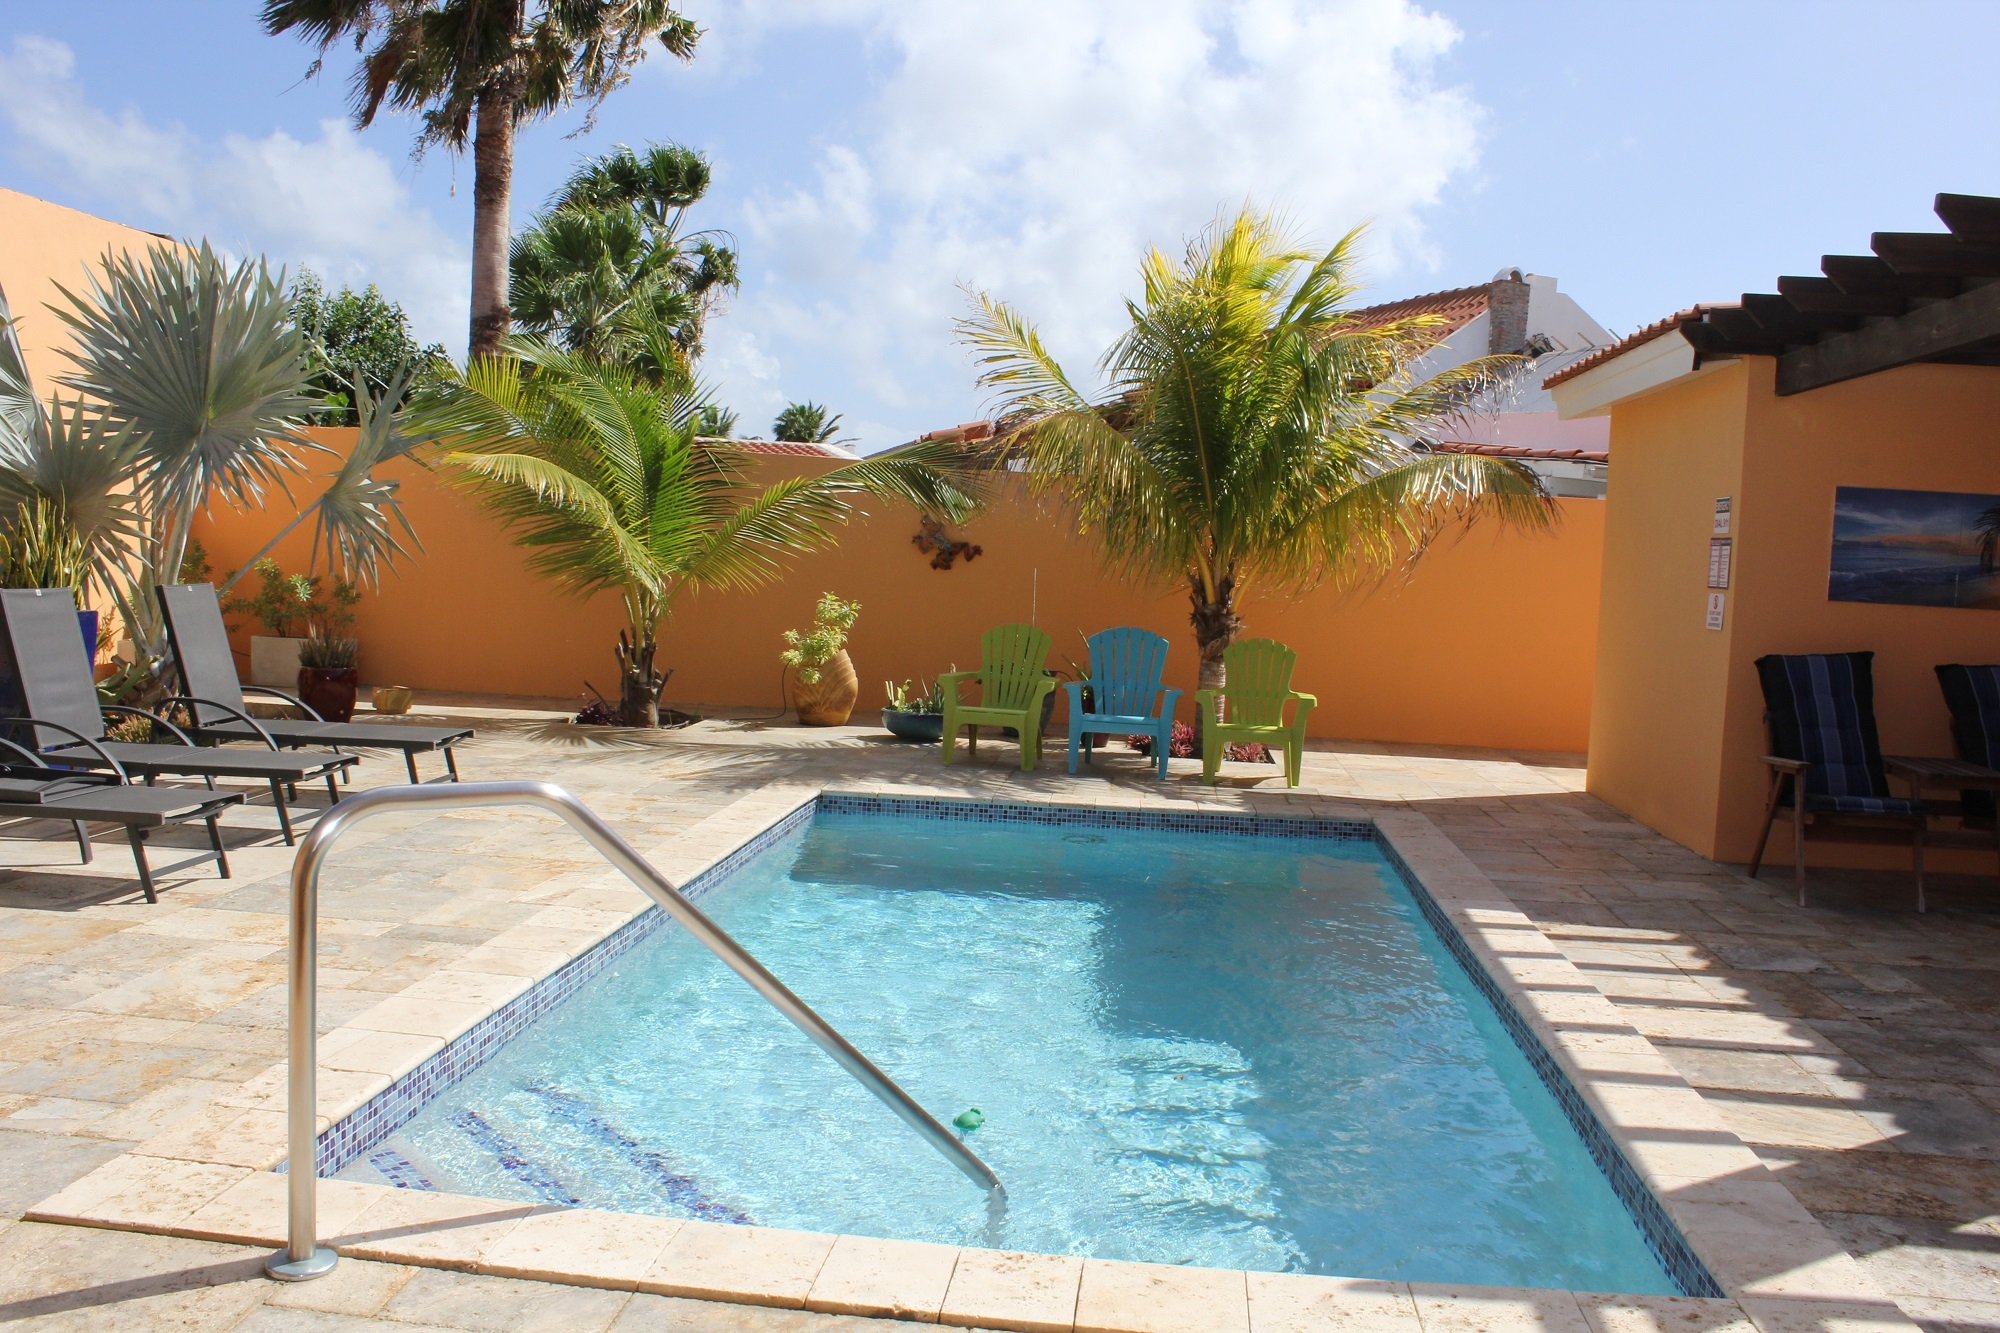 Aruba Day Dreams, only minutes drive away from the best beaches photo 23183102